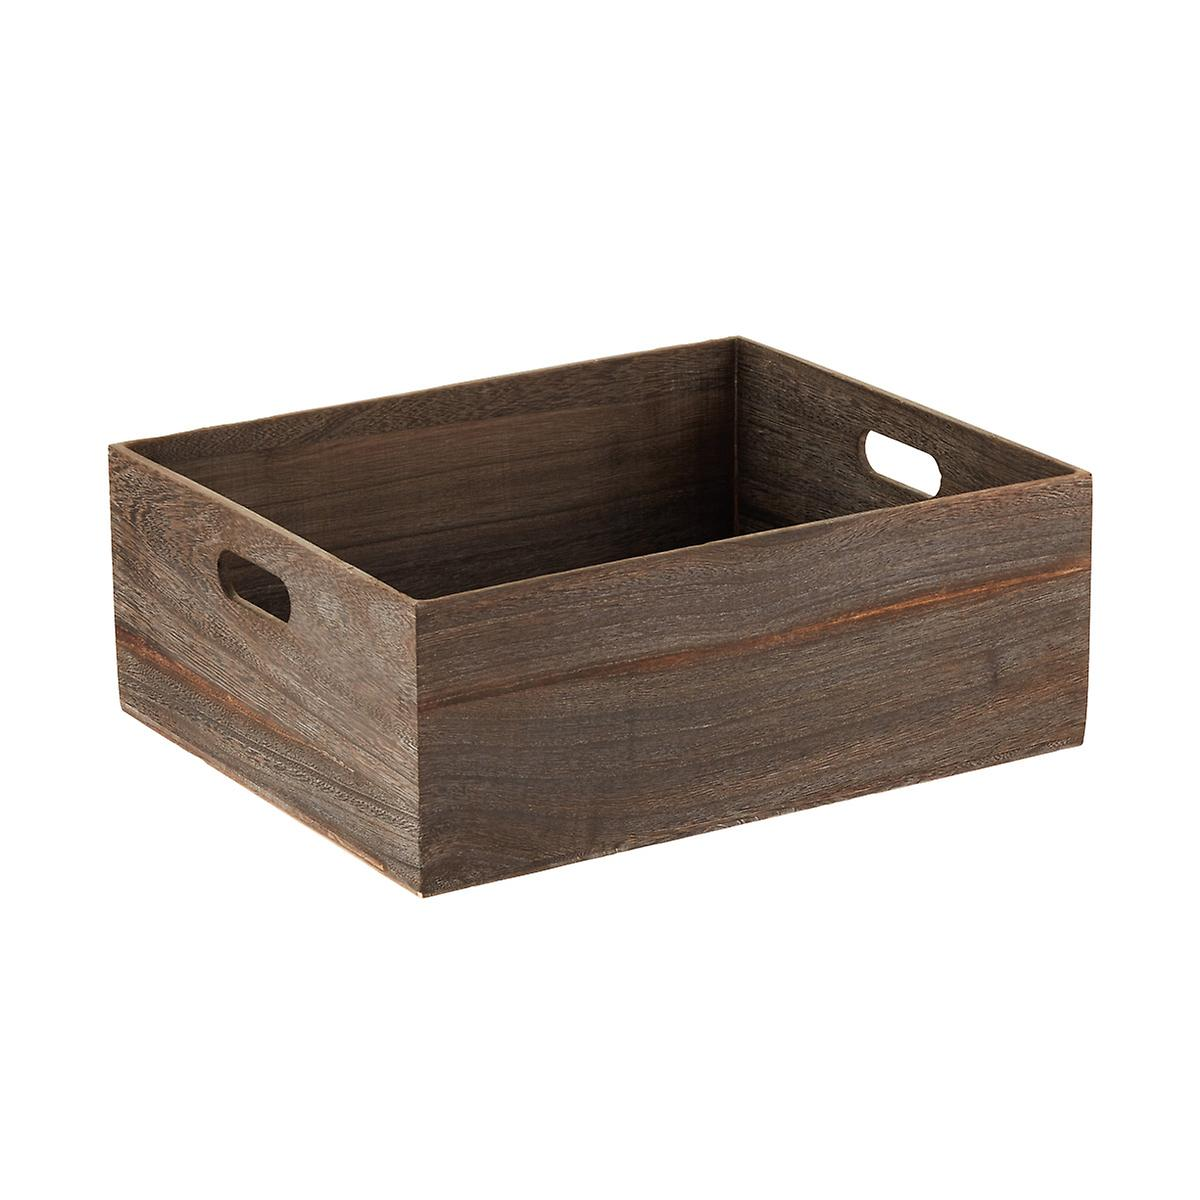 Feathergrain Wooden Storage Bins